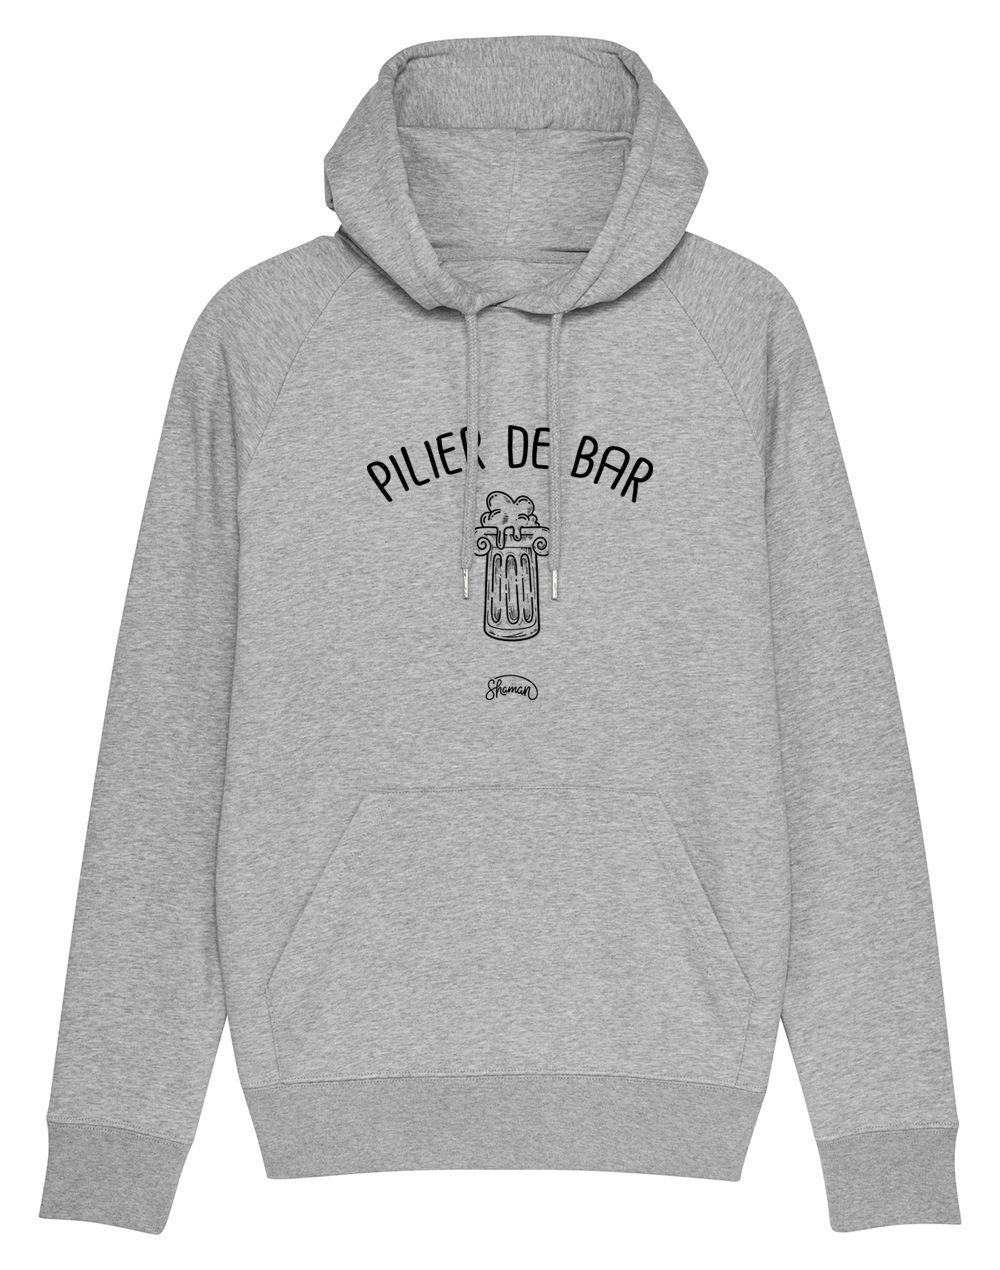 "Sweat capuche ""Pilier de bar"""